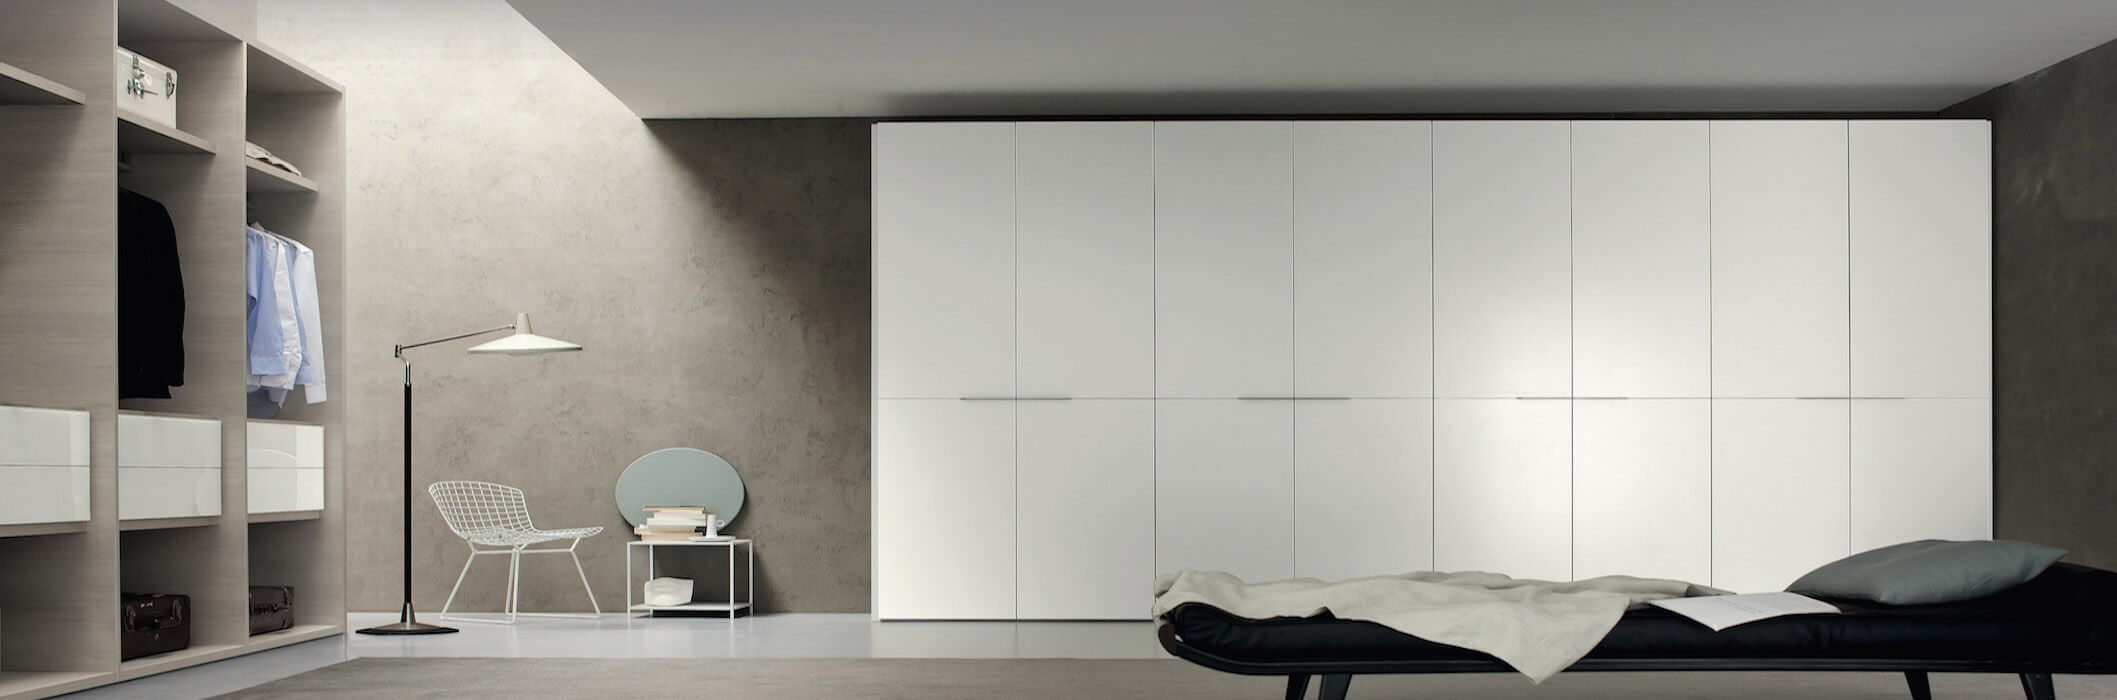 Ample space in this bedroom provides room for expanse of white flush wall storage panels, with open closet shelving across from flat black bed on slate grey floor with darker toned walls.